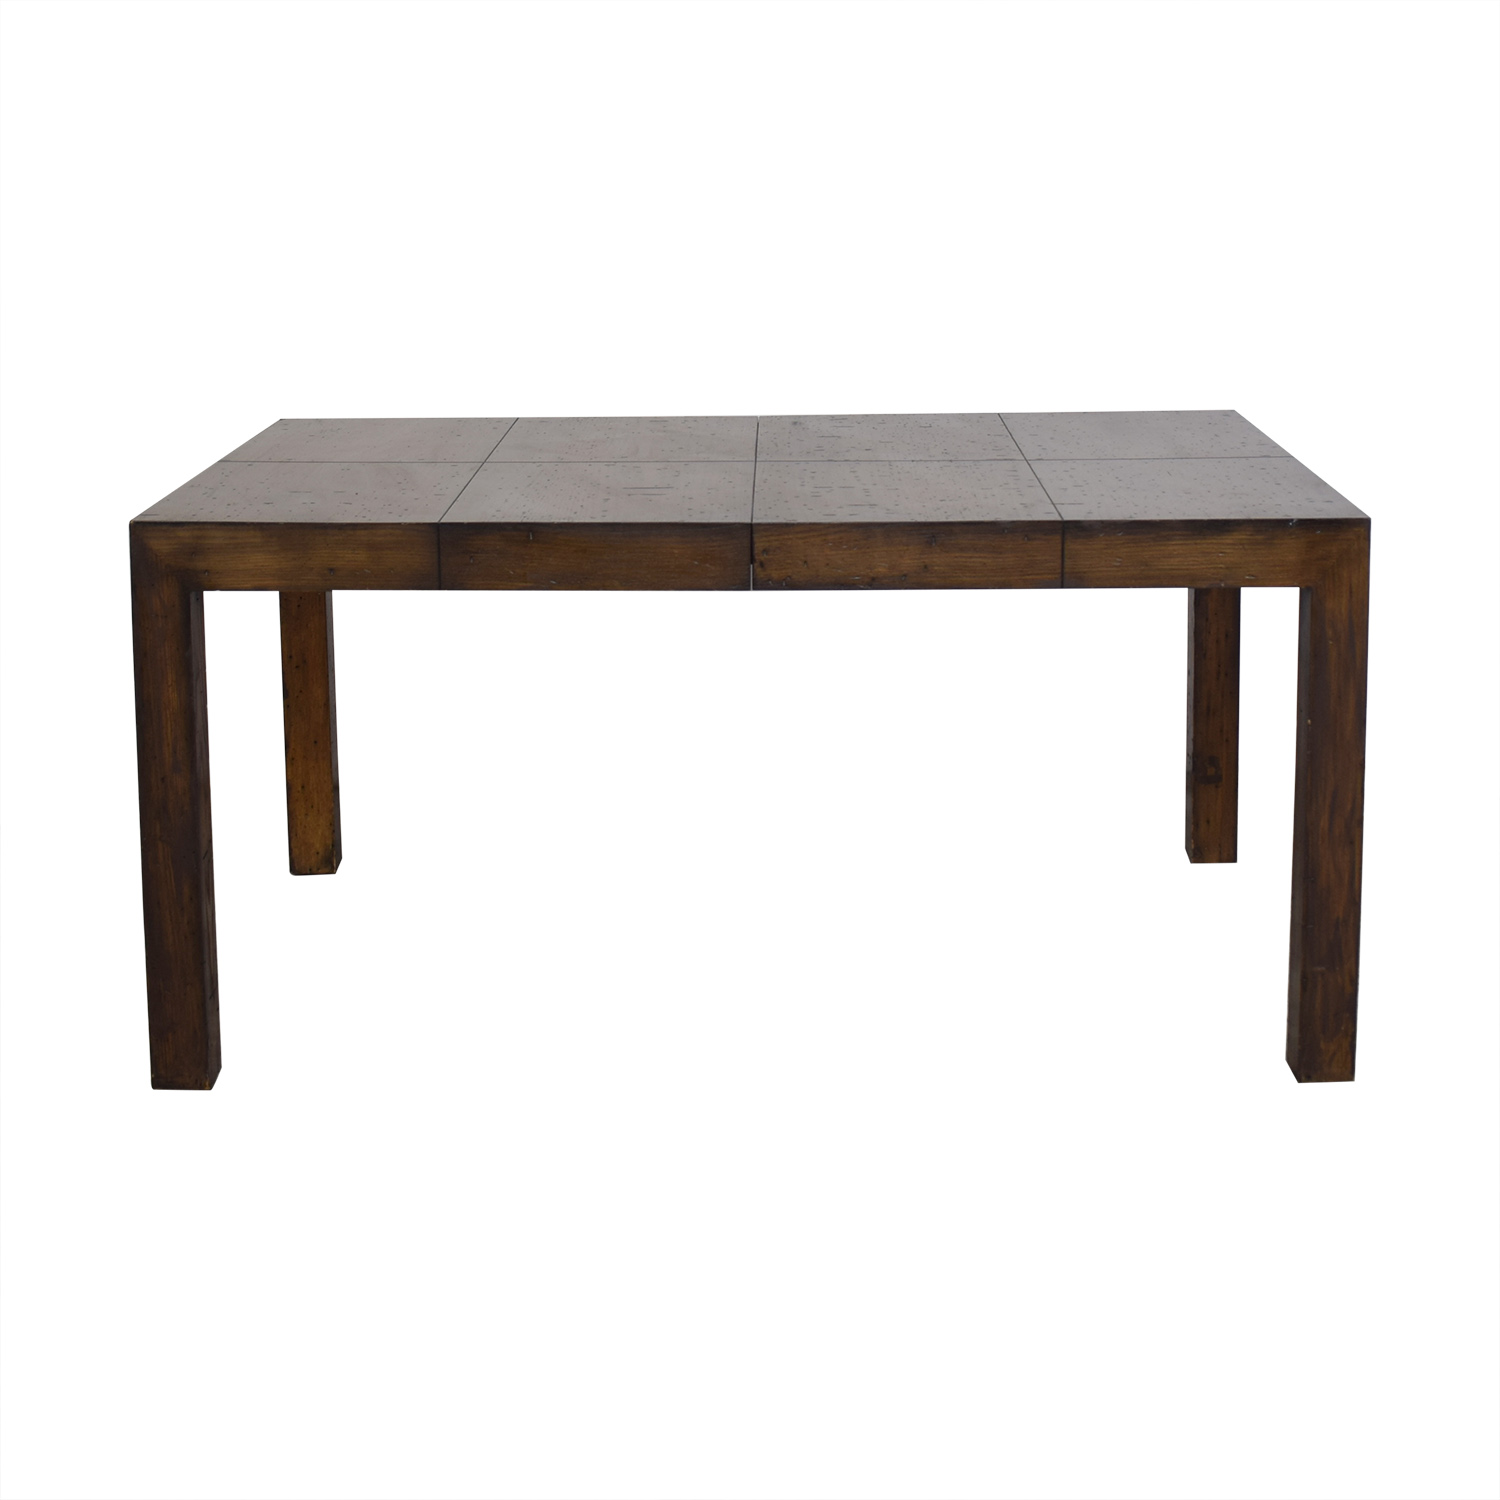 Old Dominion Wood Corporation Butcher Block Dining Table for sale